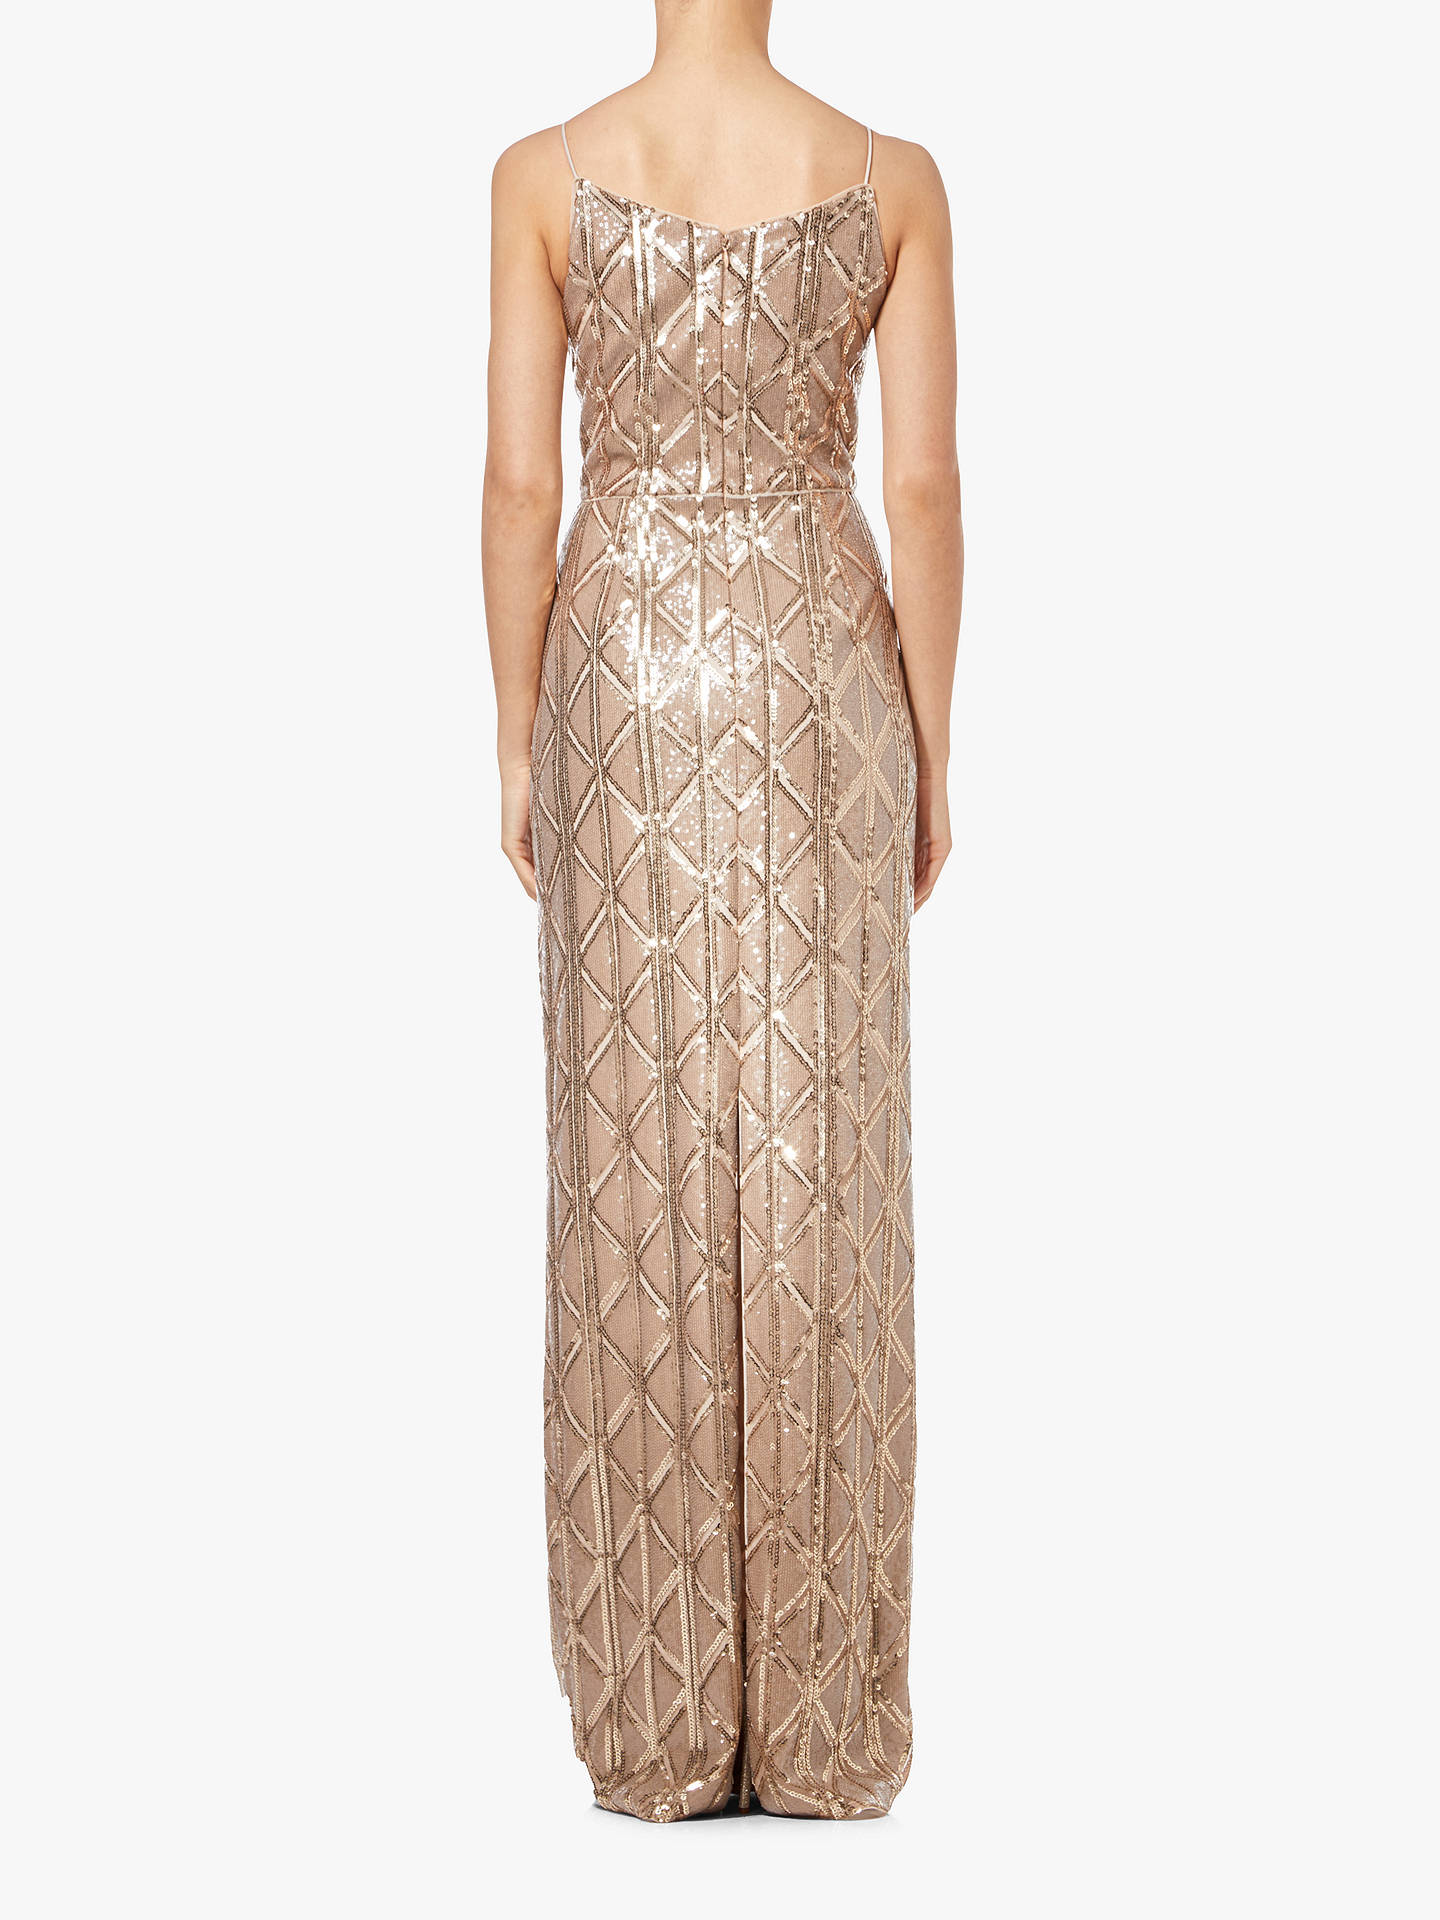 Buy Adrianna Papell Long Sequin Dress, Champagne, 6 Online at johnlewis.com